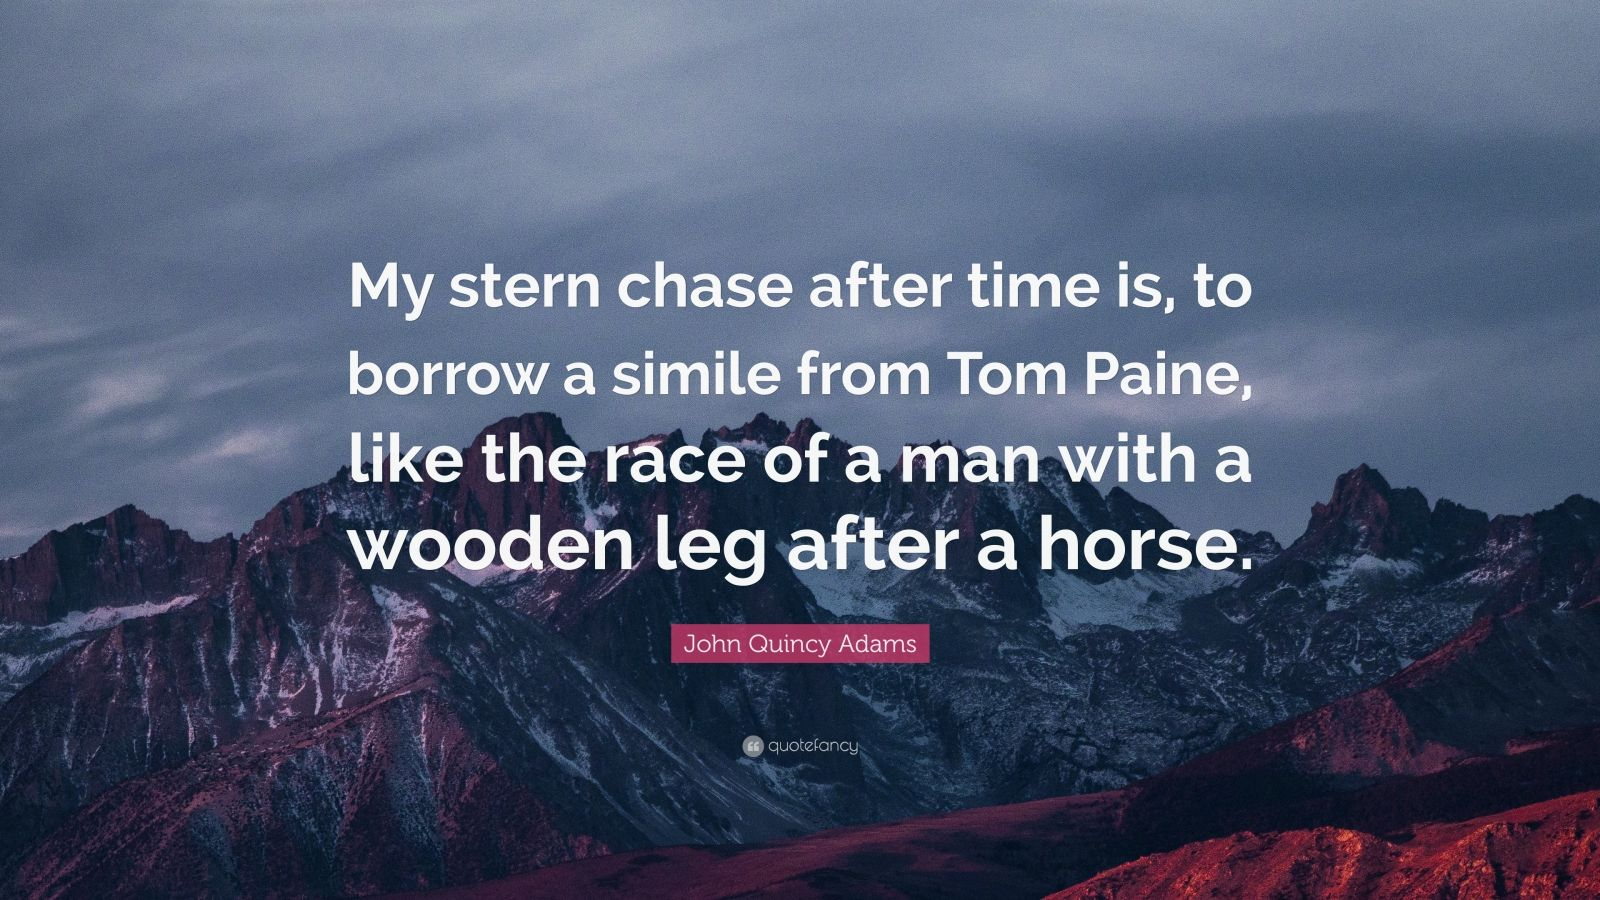 """John Quincy Adams Quote: """"My stern chase after time is, to borrow a simile from Tom Paine, like the race of a man with a wooden leg after a horse."""""""